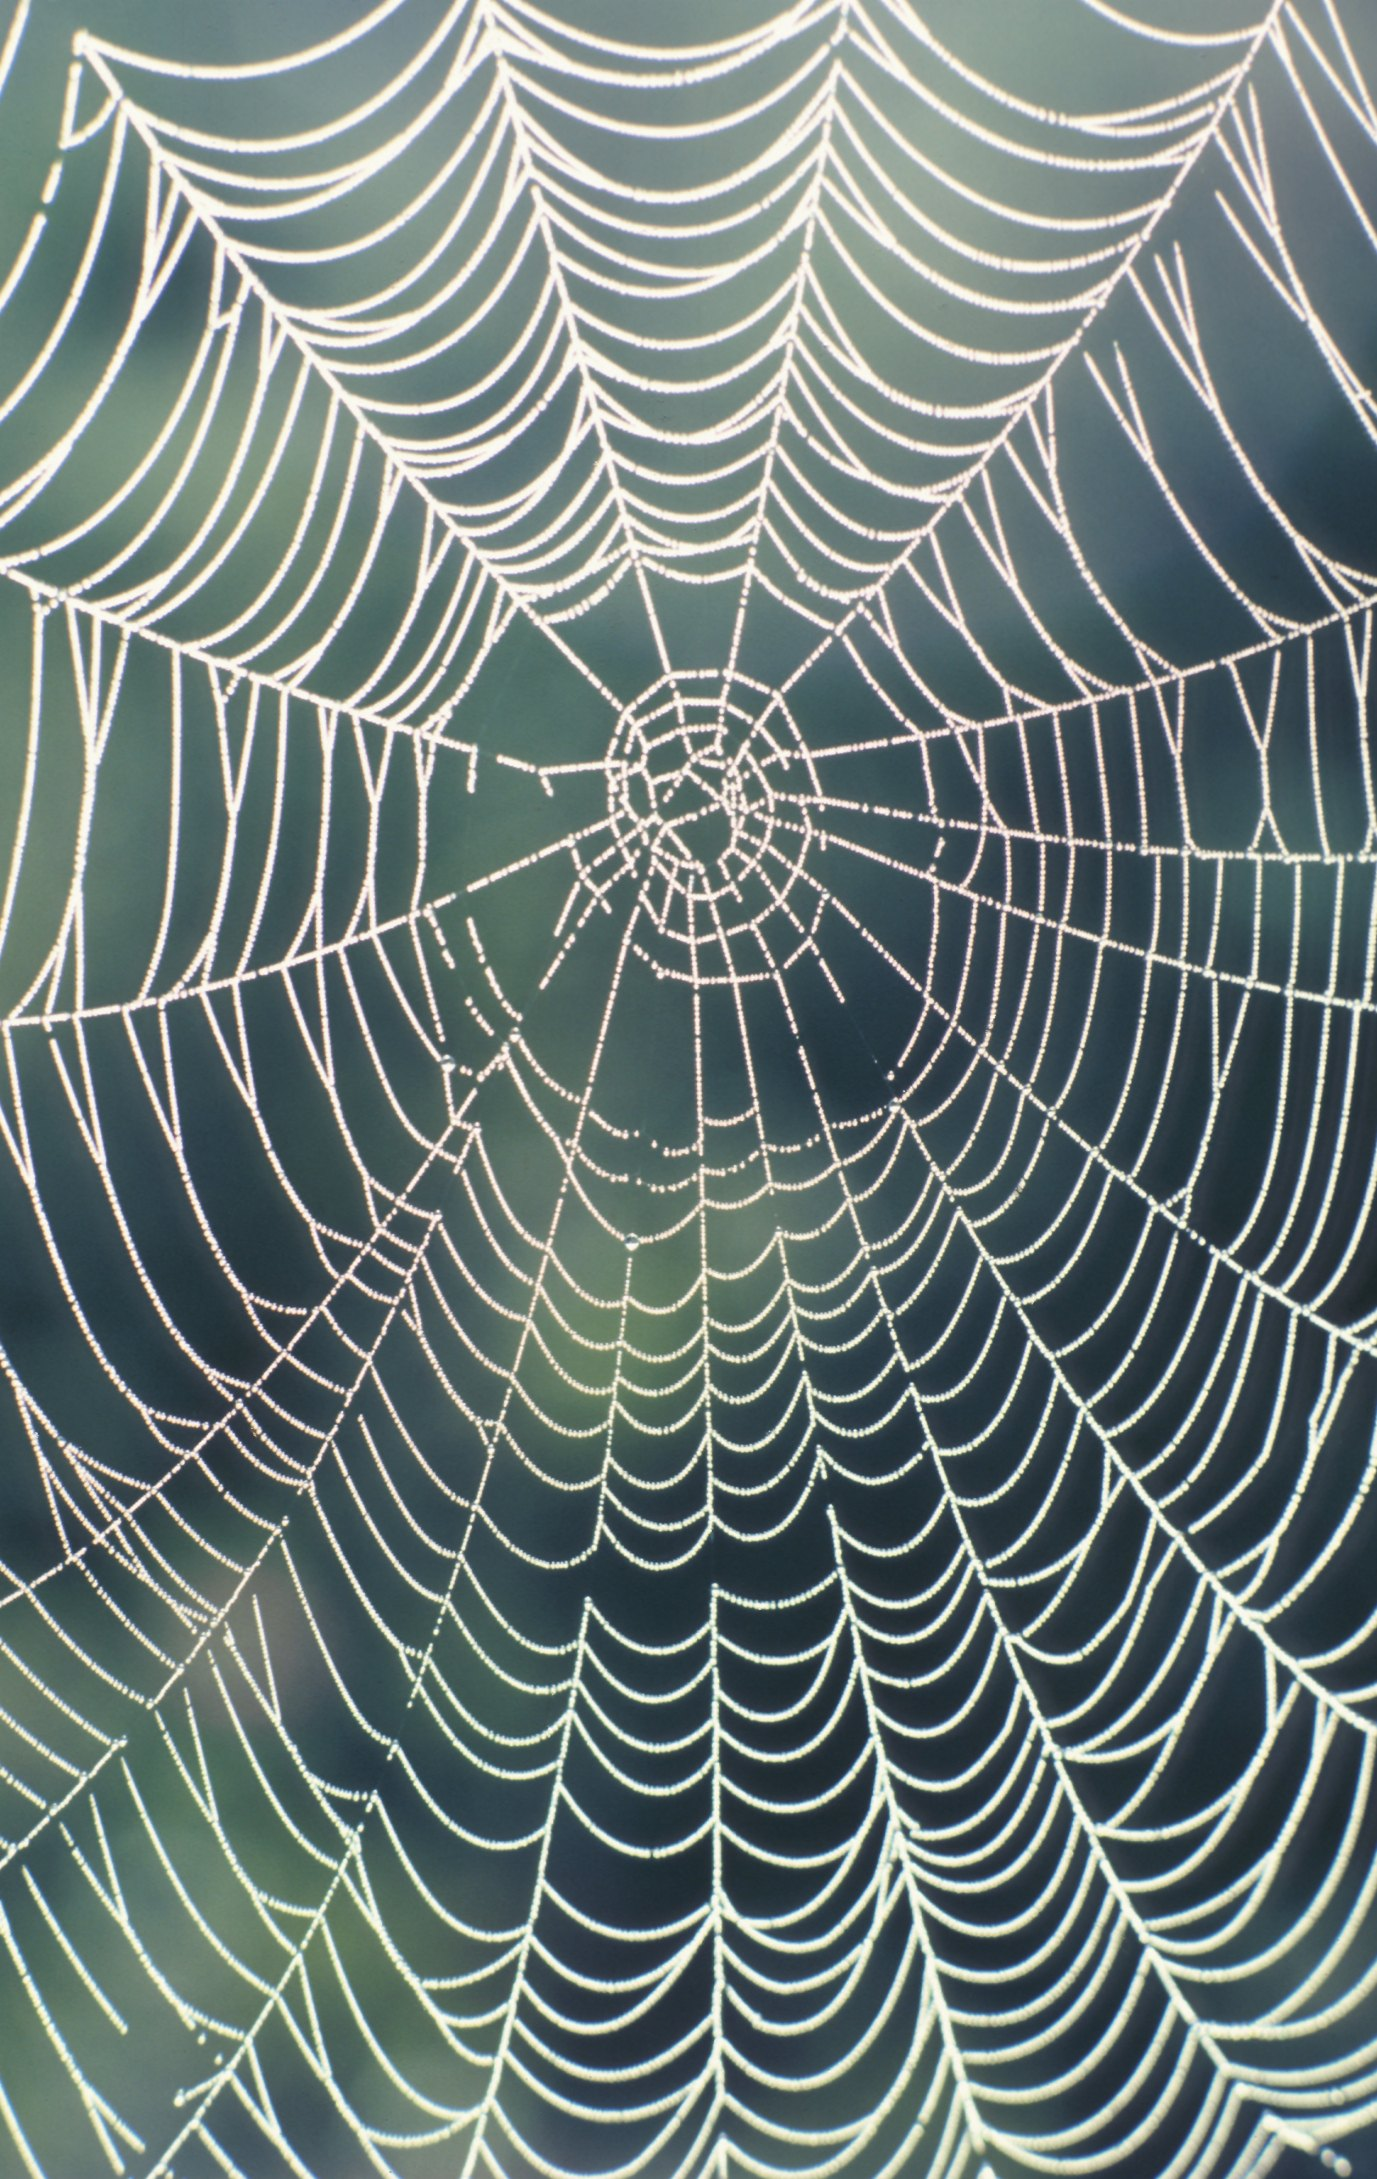 How to Make a Big Spider Web | eHow